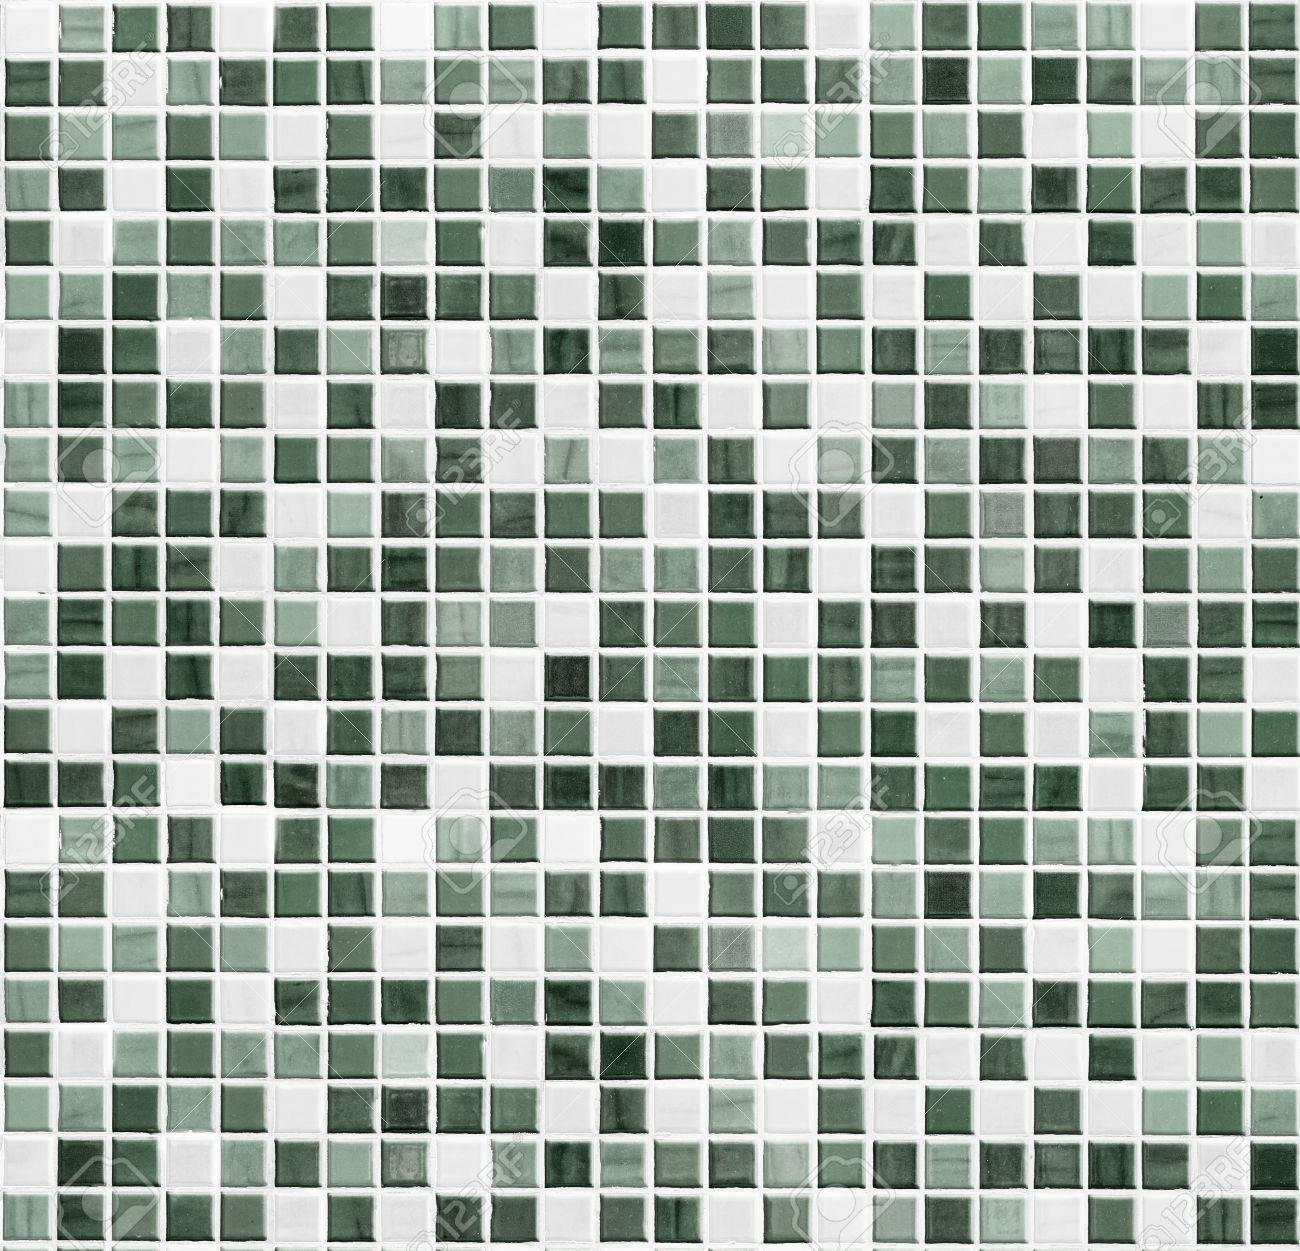 Kitchen Wall Background green tiled bathroom, kitchen or toilet tile wall background stock